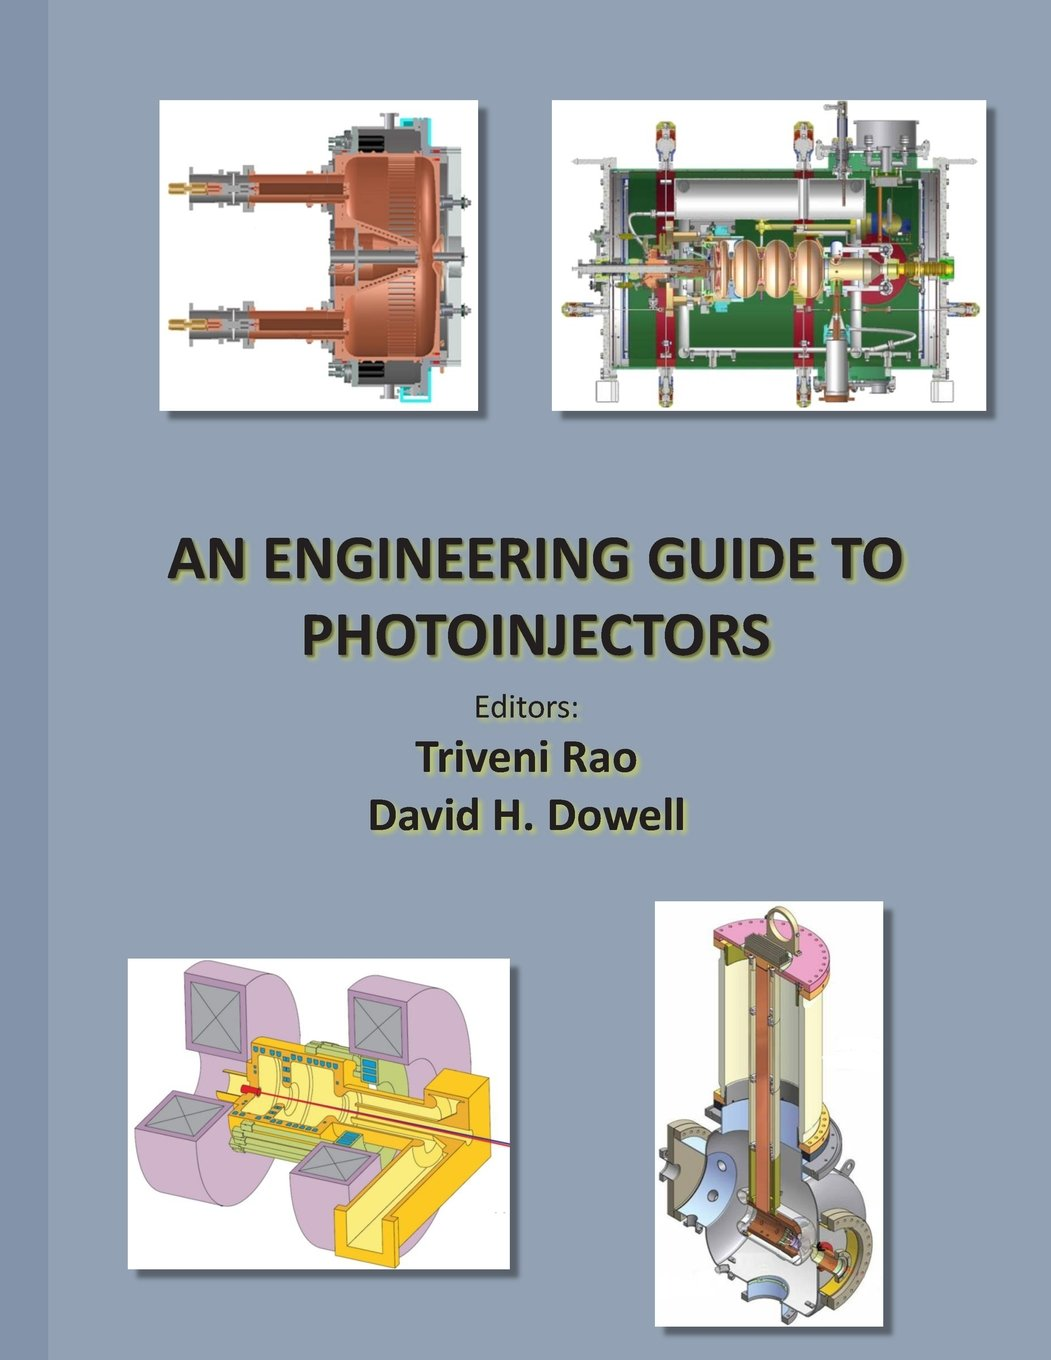 An Engineering Guide to Photoinjectors